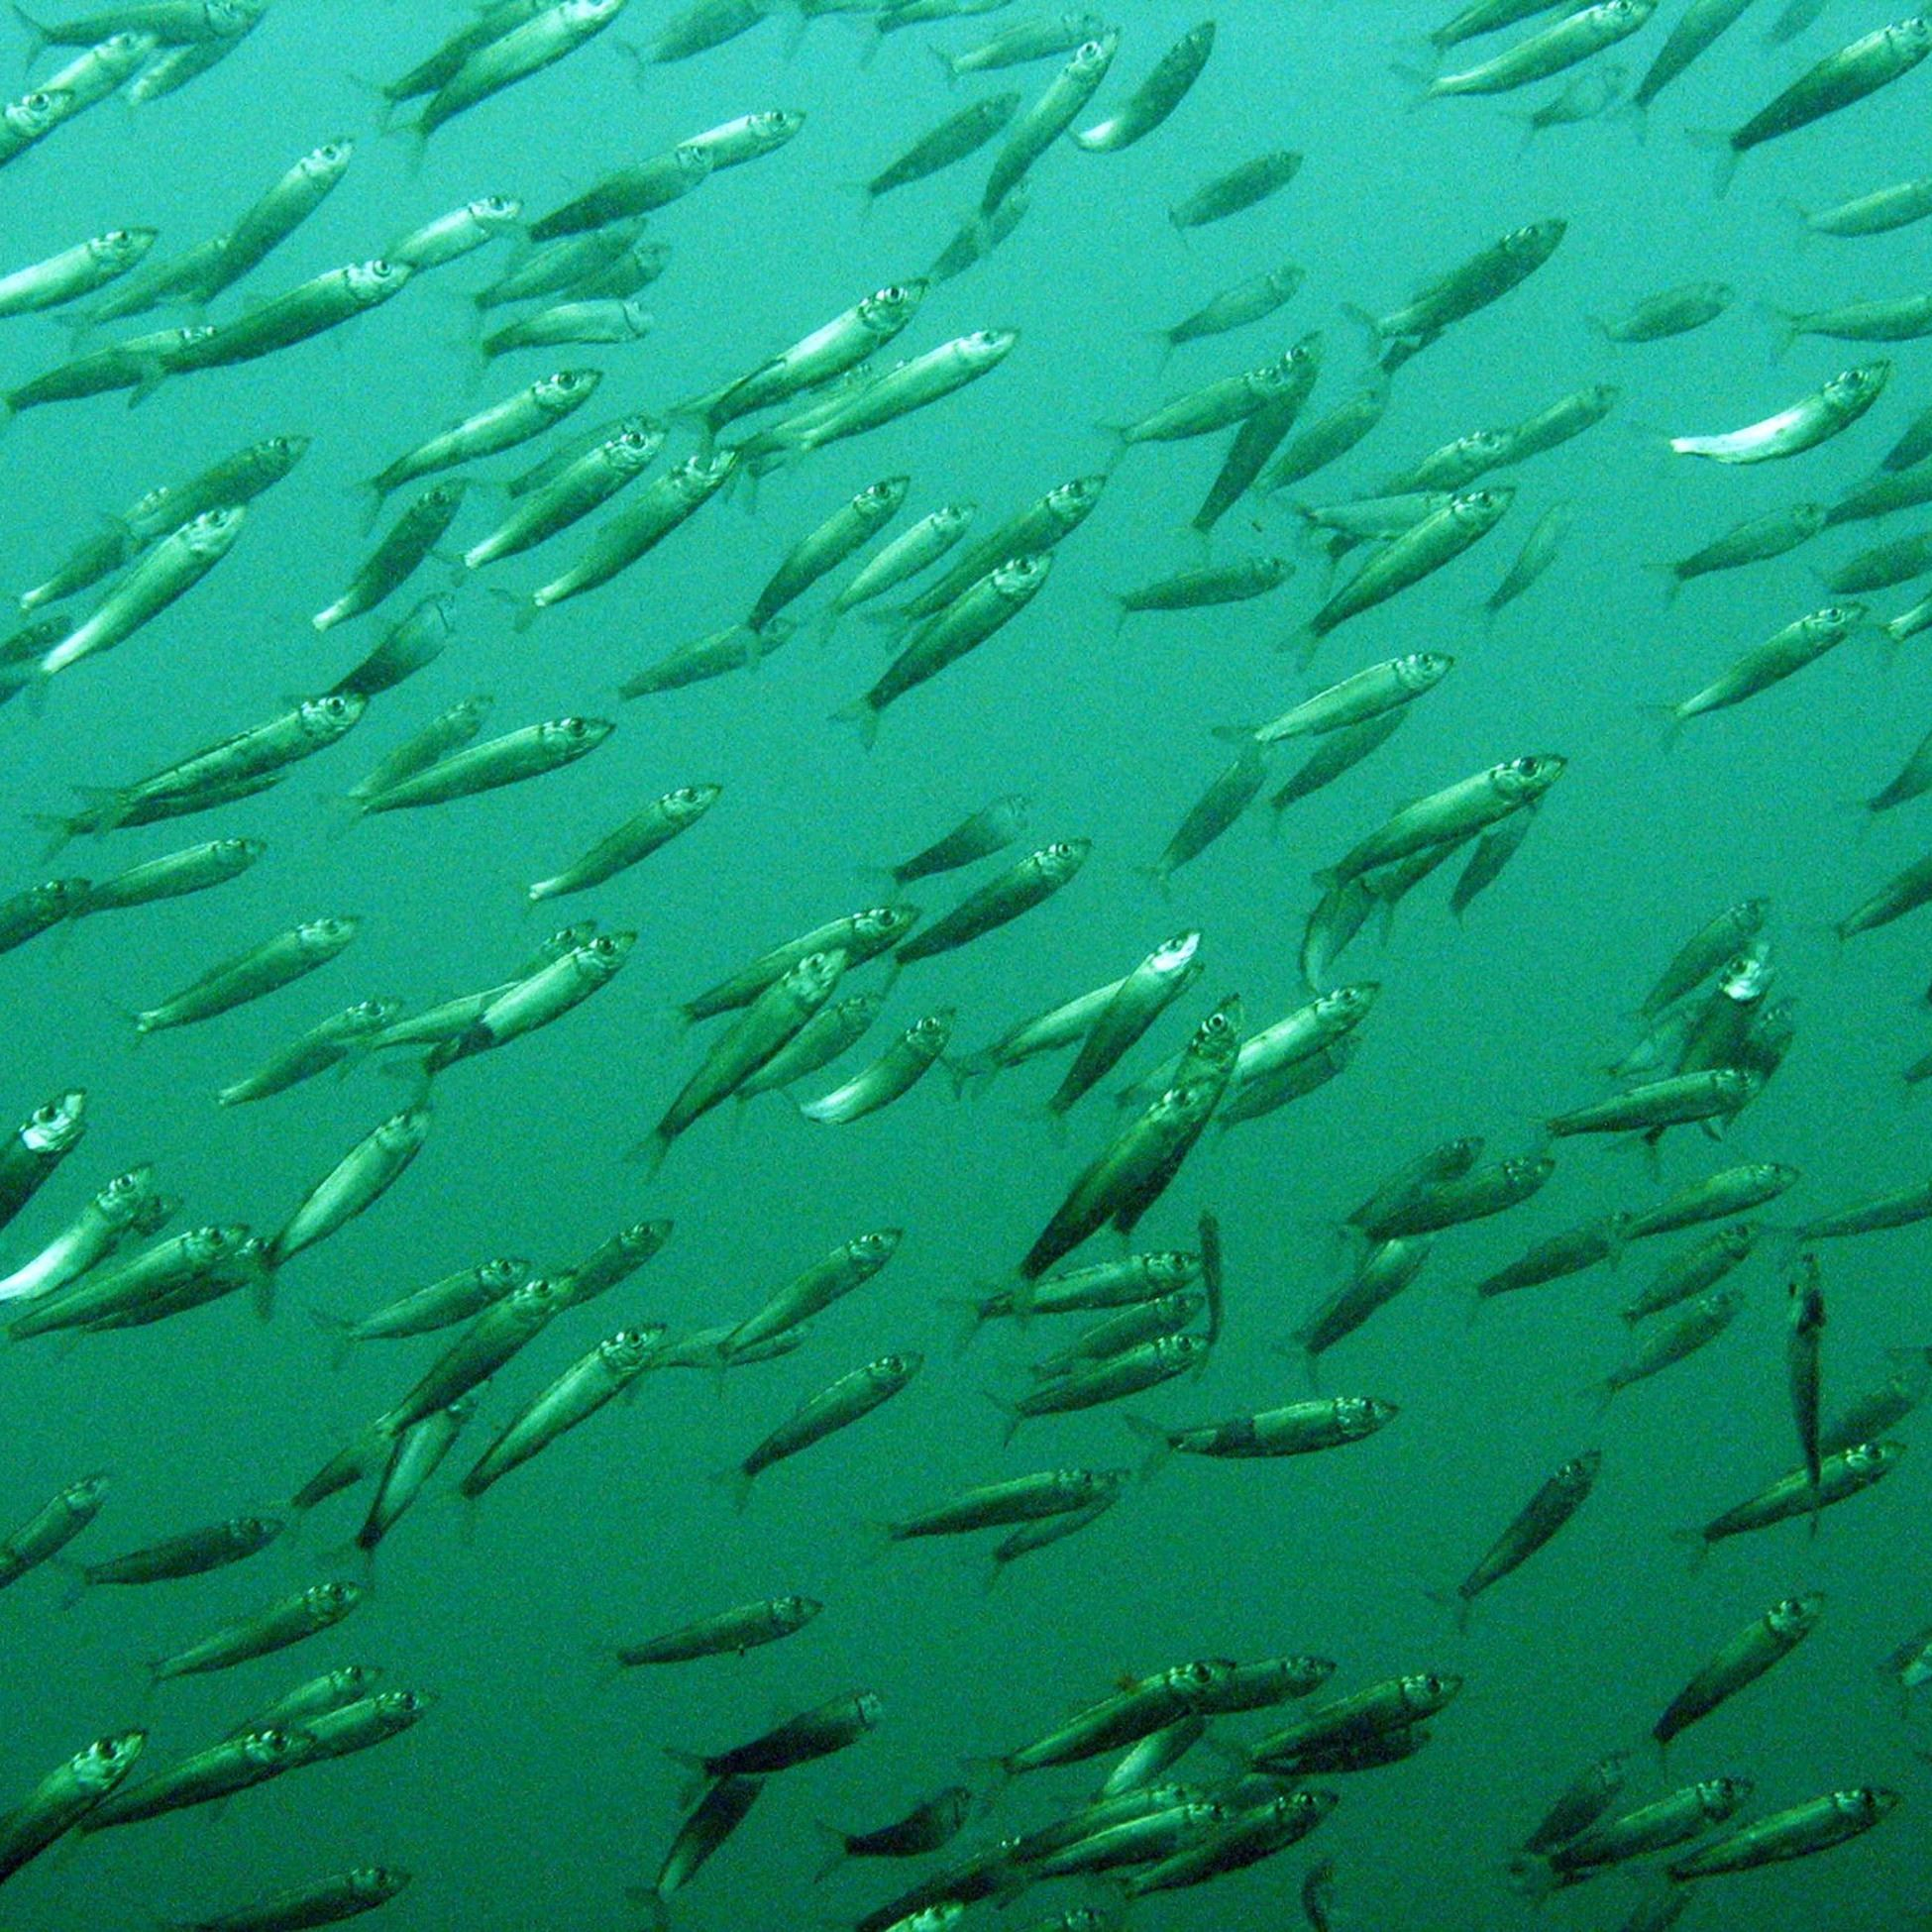 Forage fish